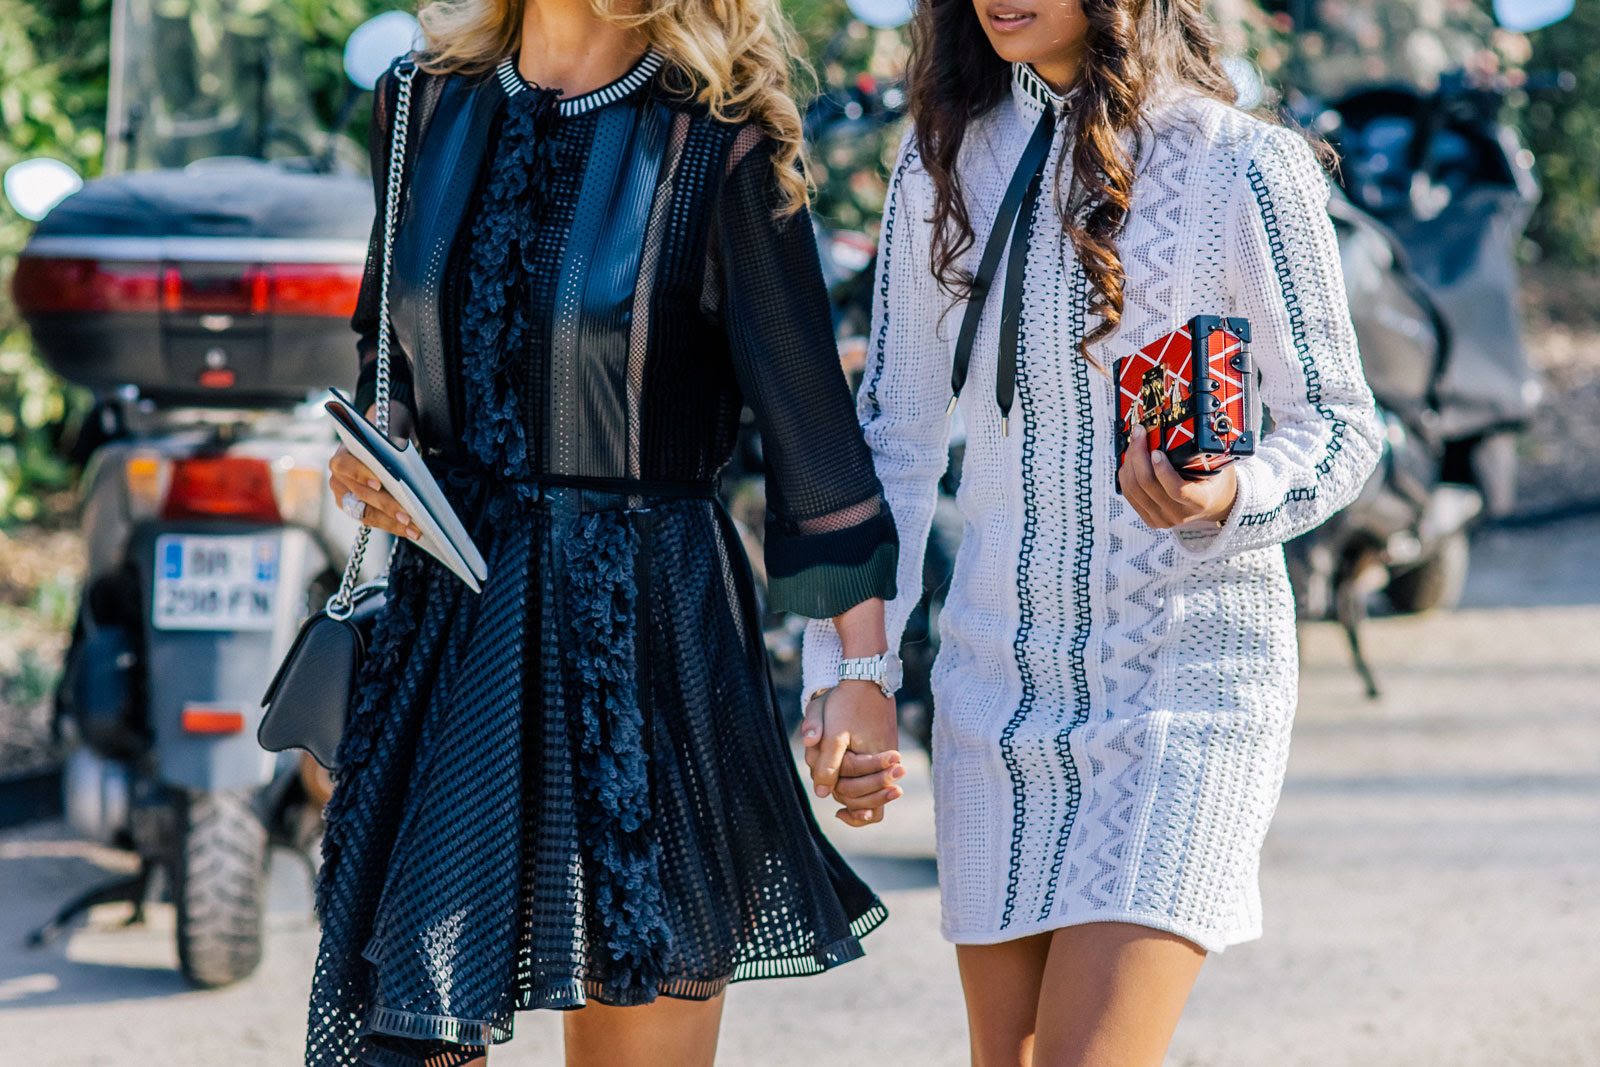 Women wearing Louis Vuitton outfits before the Louis Vuitton Fall/Winter 2015-2016 fashion show in Paris, France